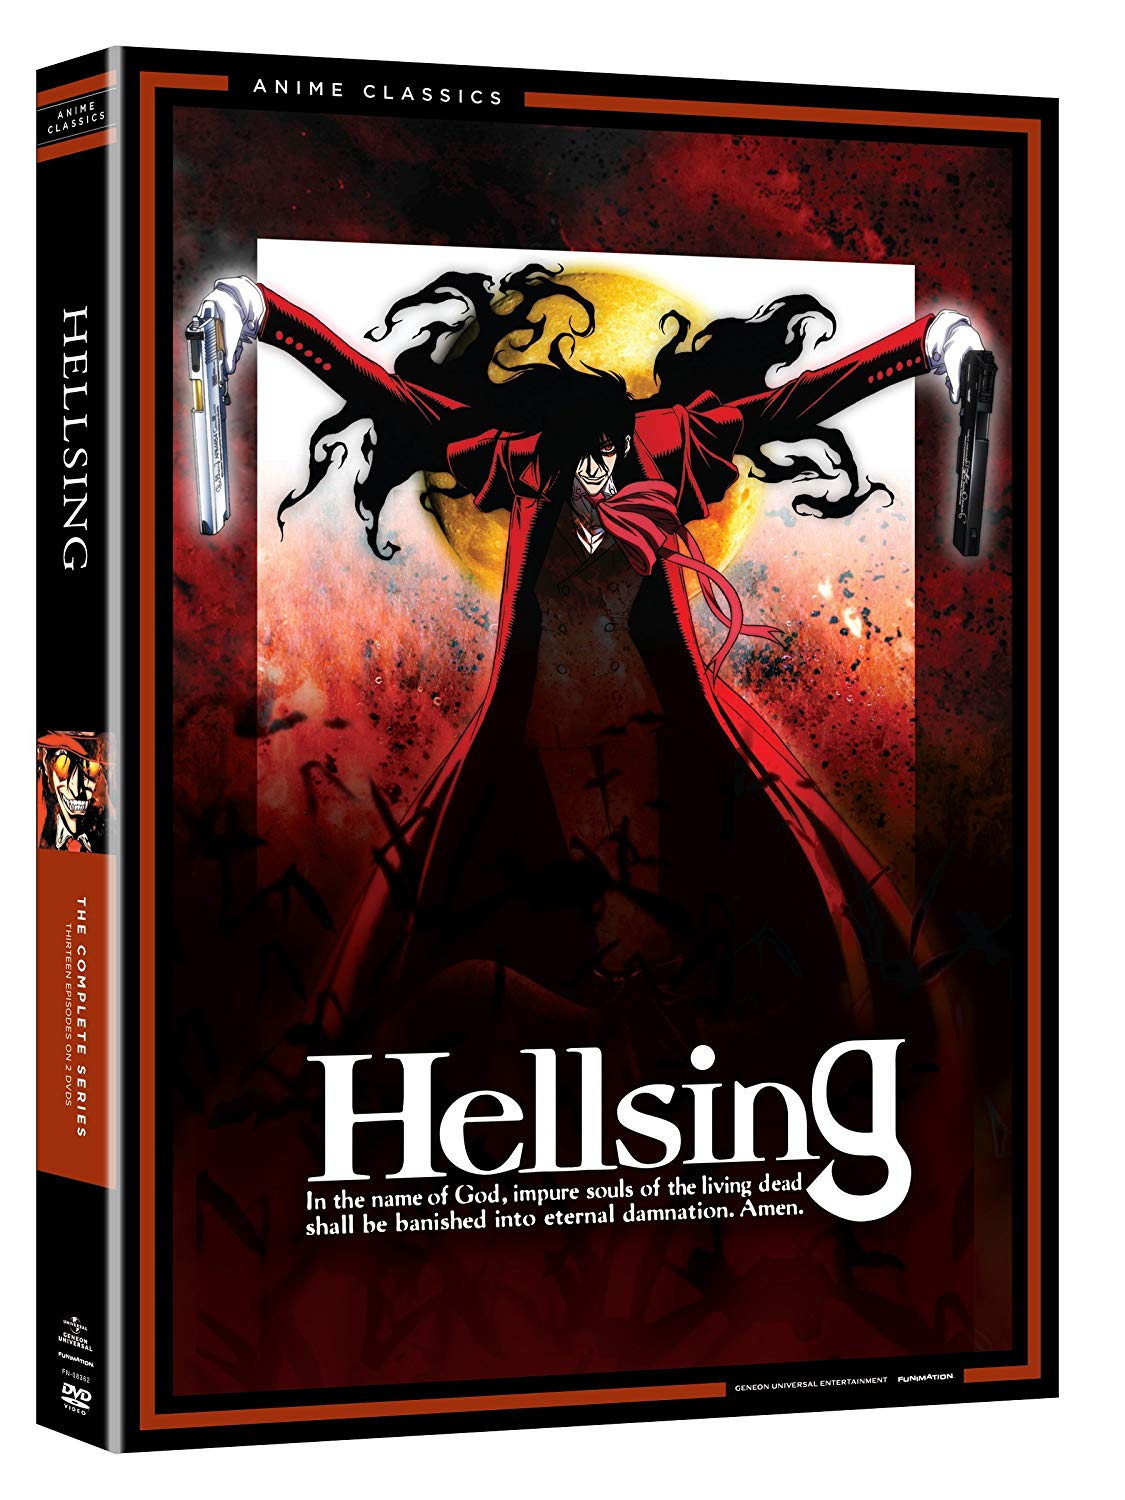 Anime cover: Hellsing